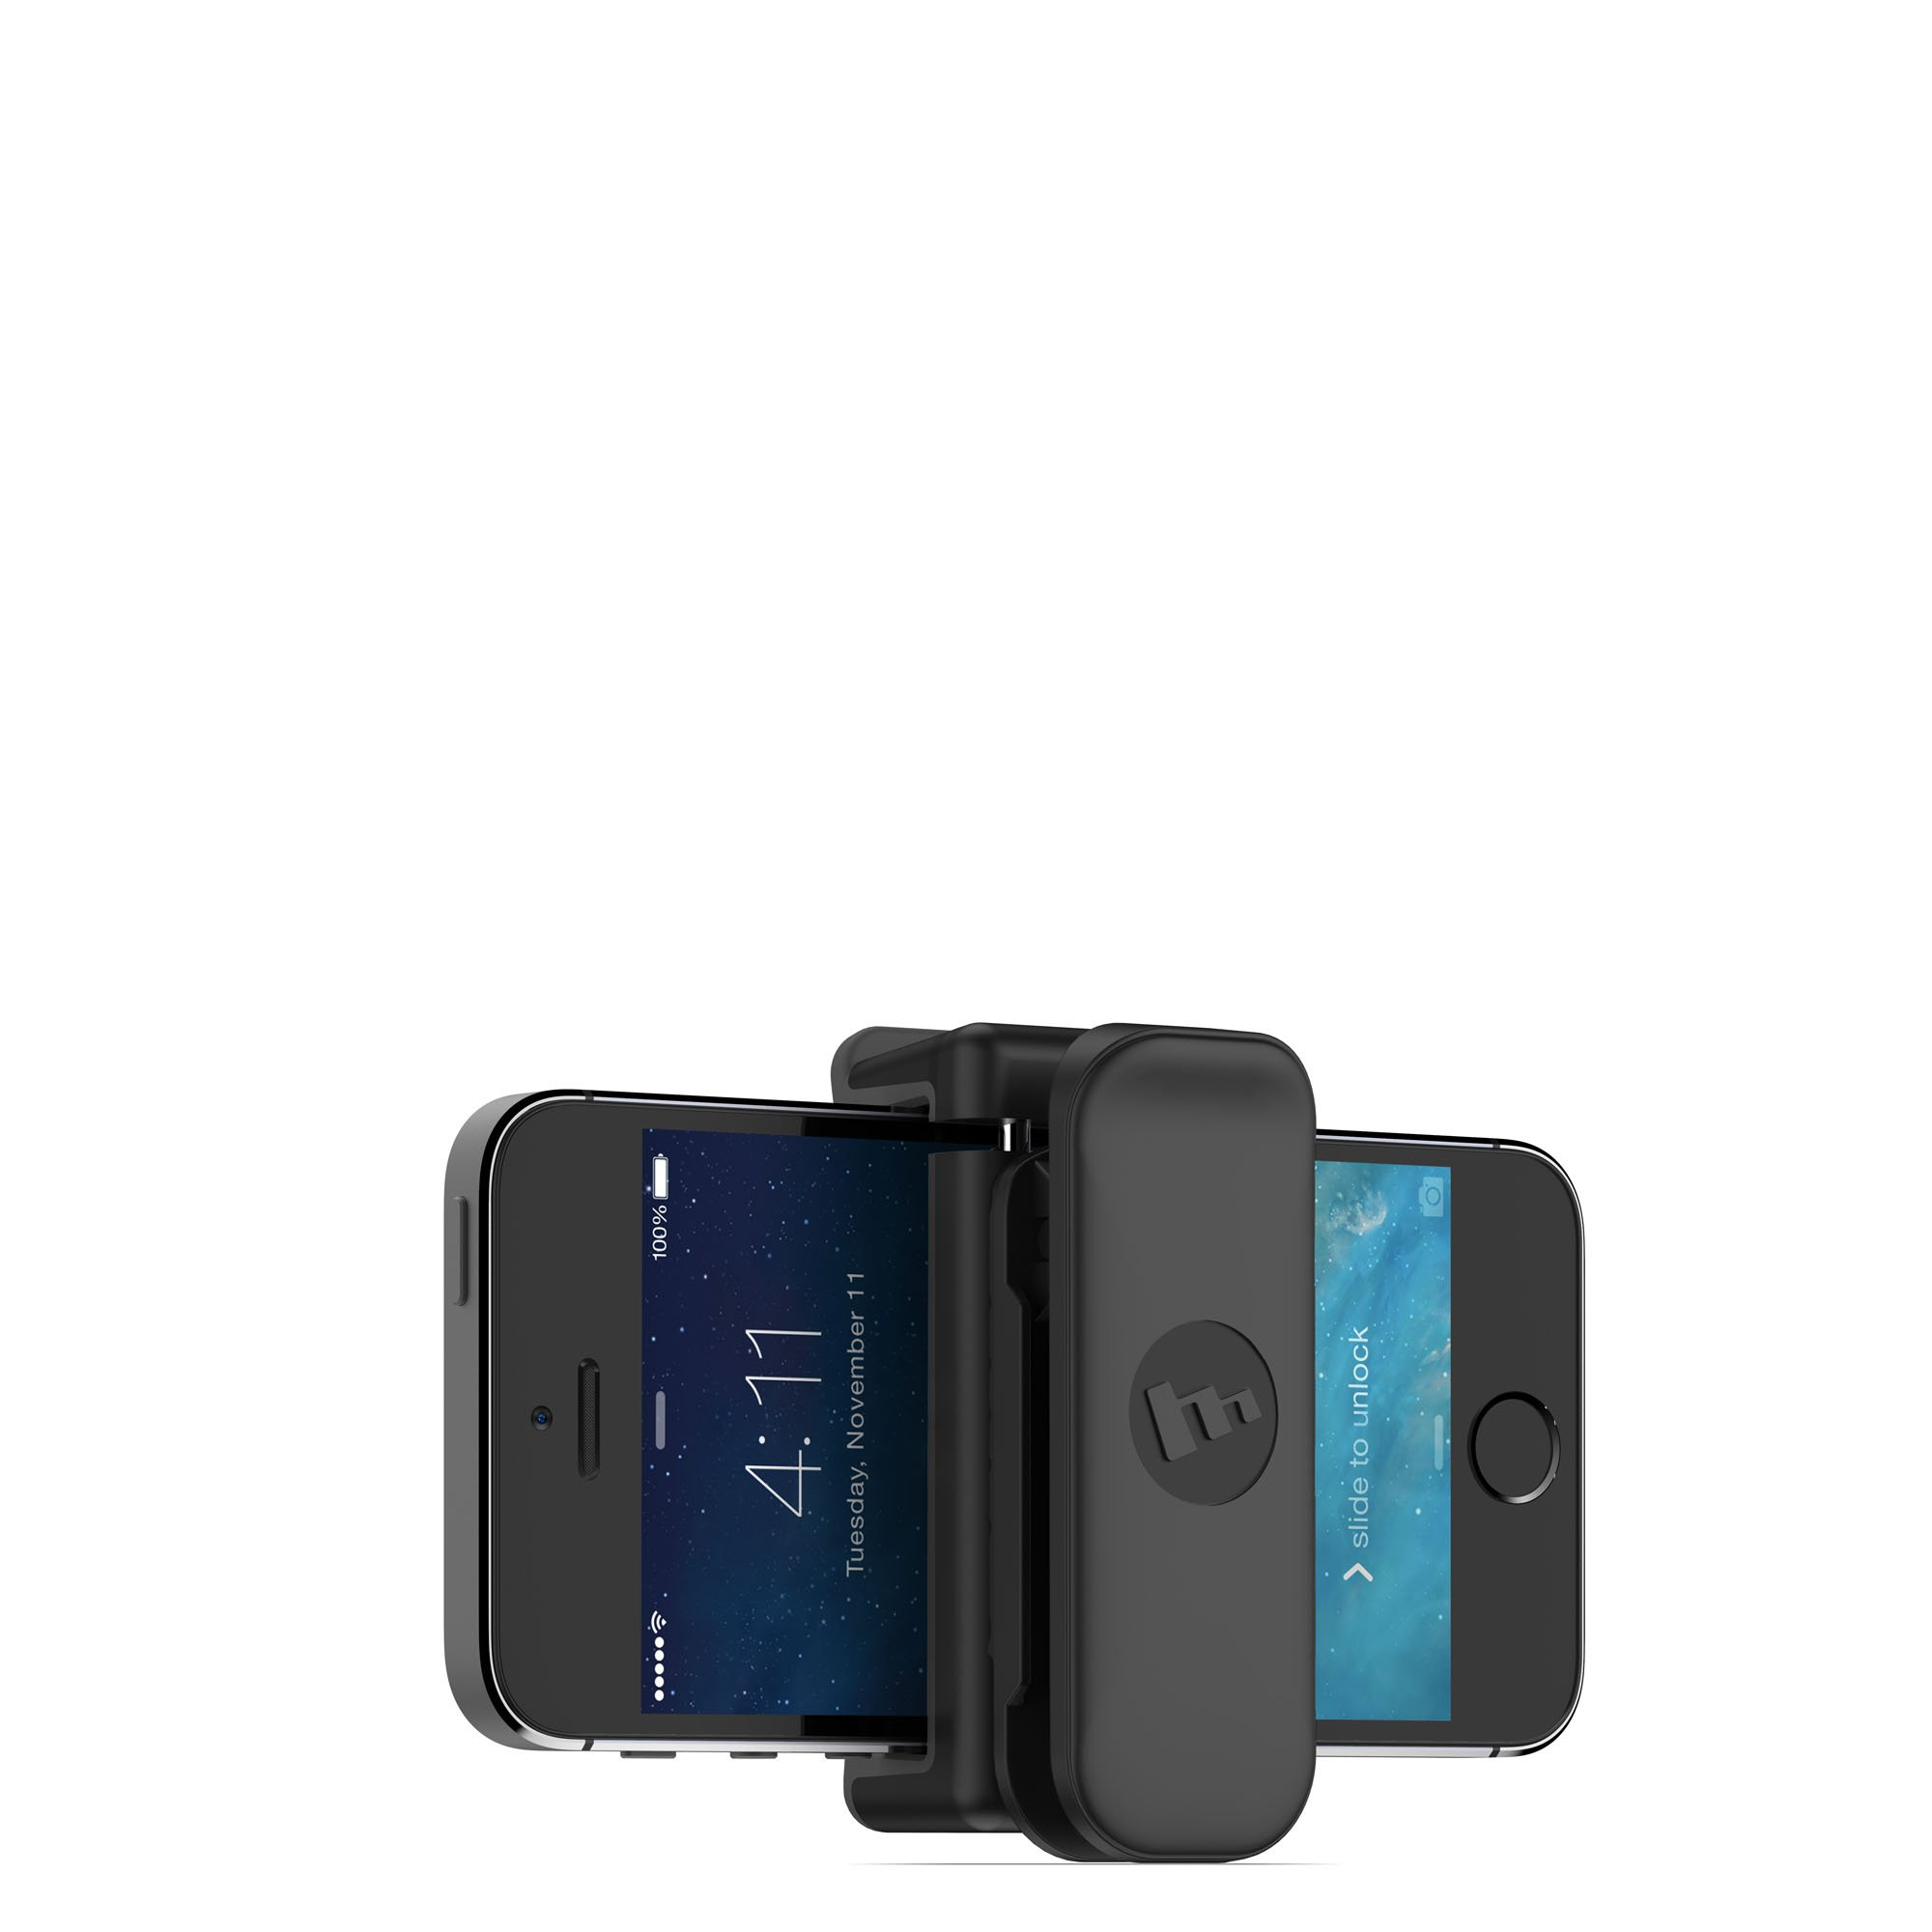 mophie Universal Belt Clip Compatible with iPhone - Apple 6/6s iPhone 6 Plus/6s Plus, iPhone 5s/5s/5c/5 - Black